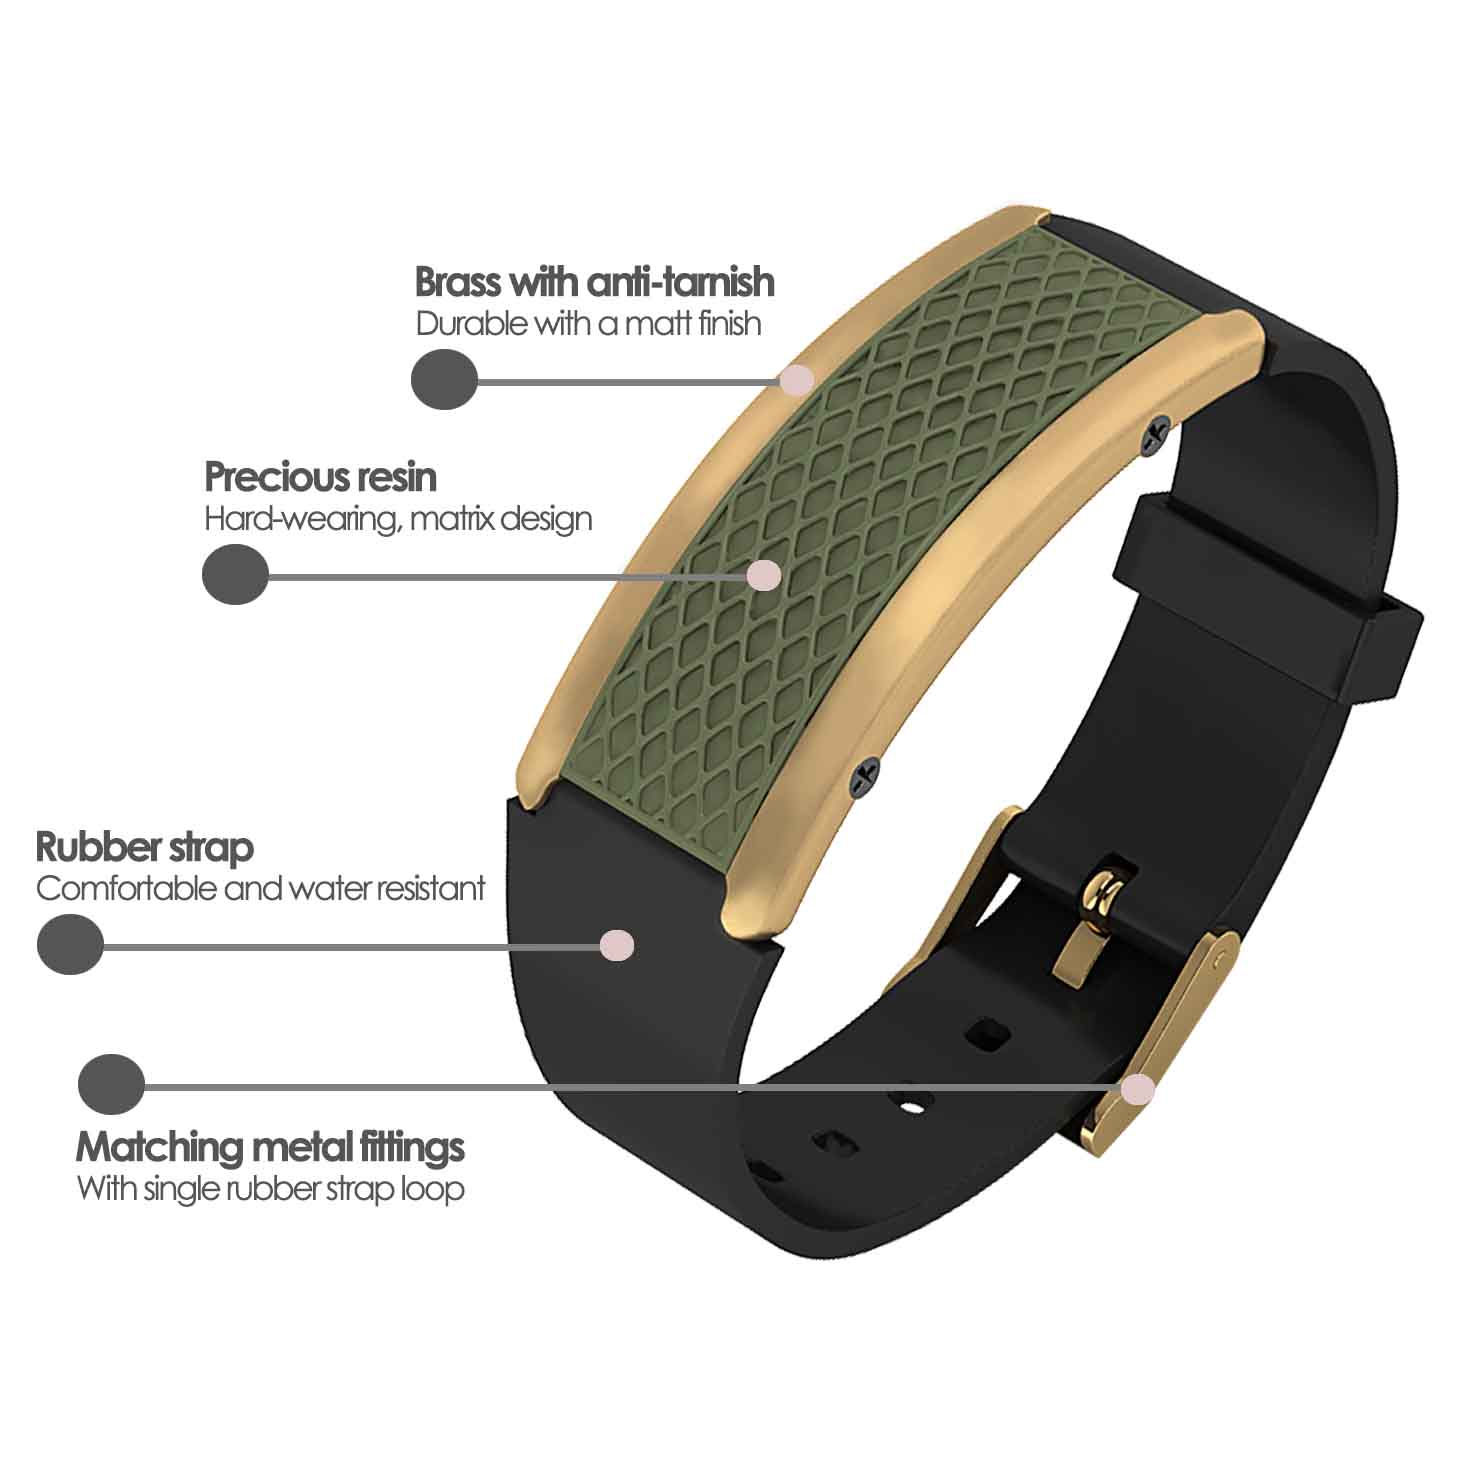 Monaco contactless payment wearable bracelet khaki green and black rubber product details specification